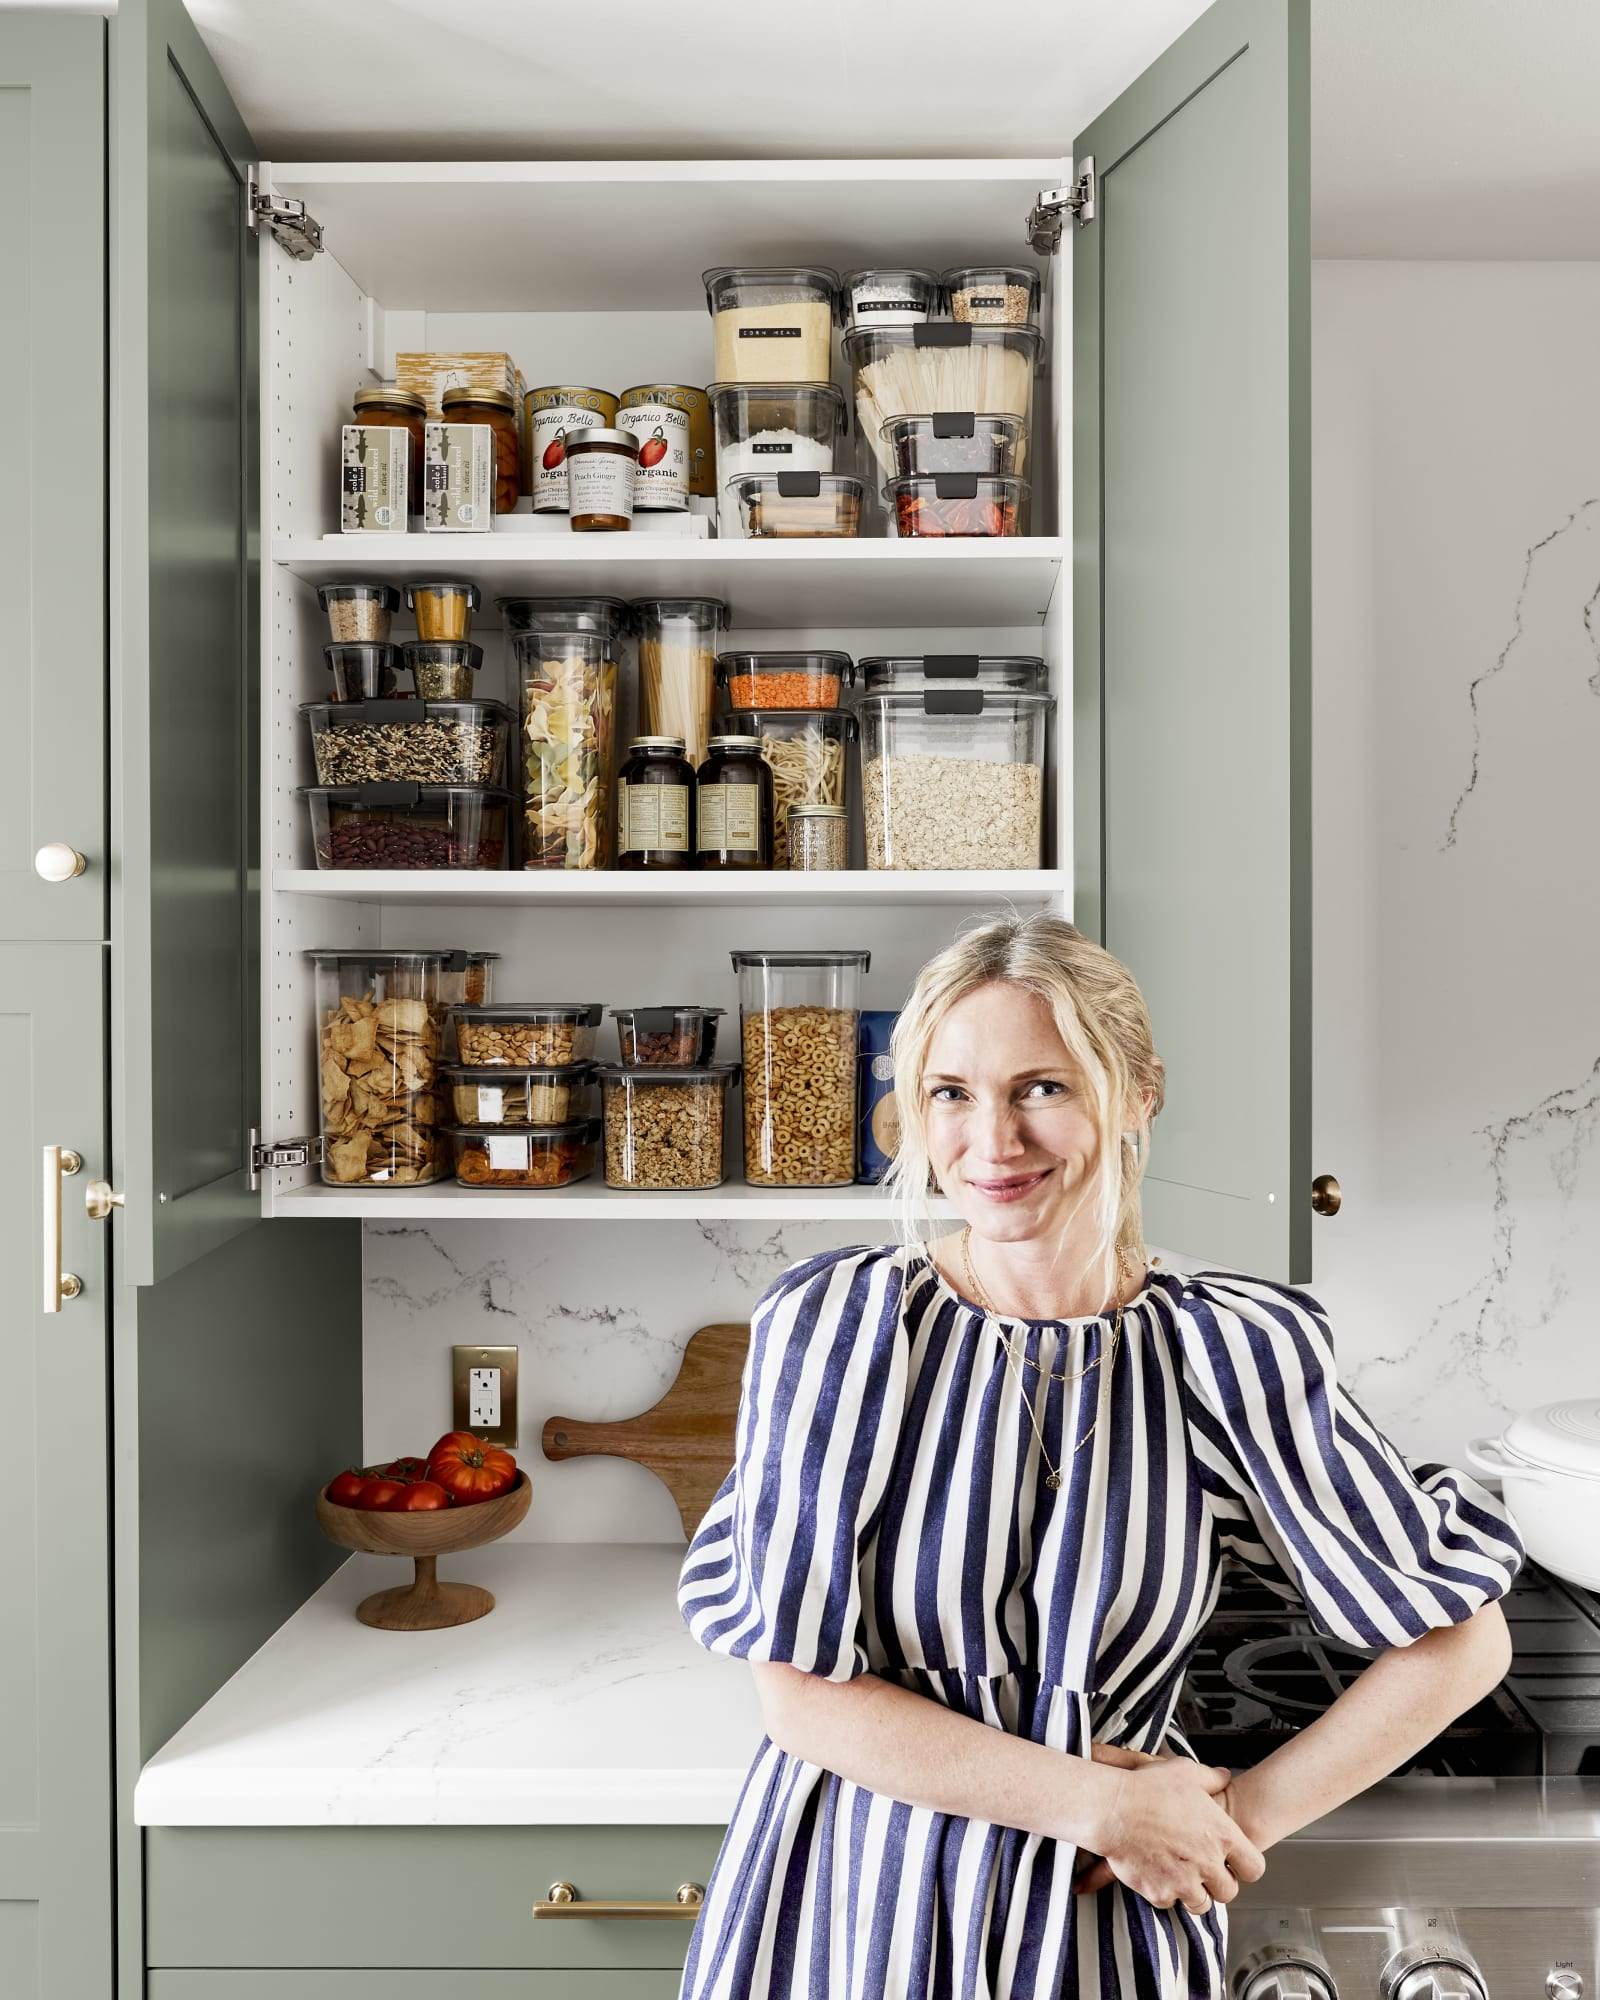 Rubbermaid Brilliance and Emily Henderson offer a clear pantry solution